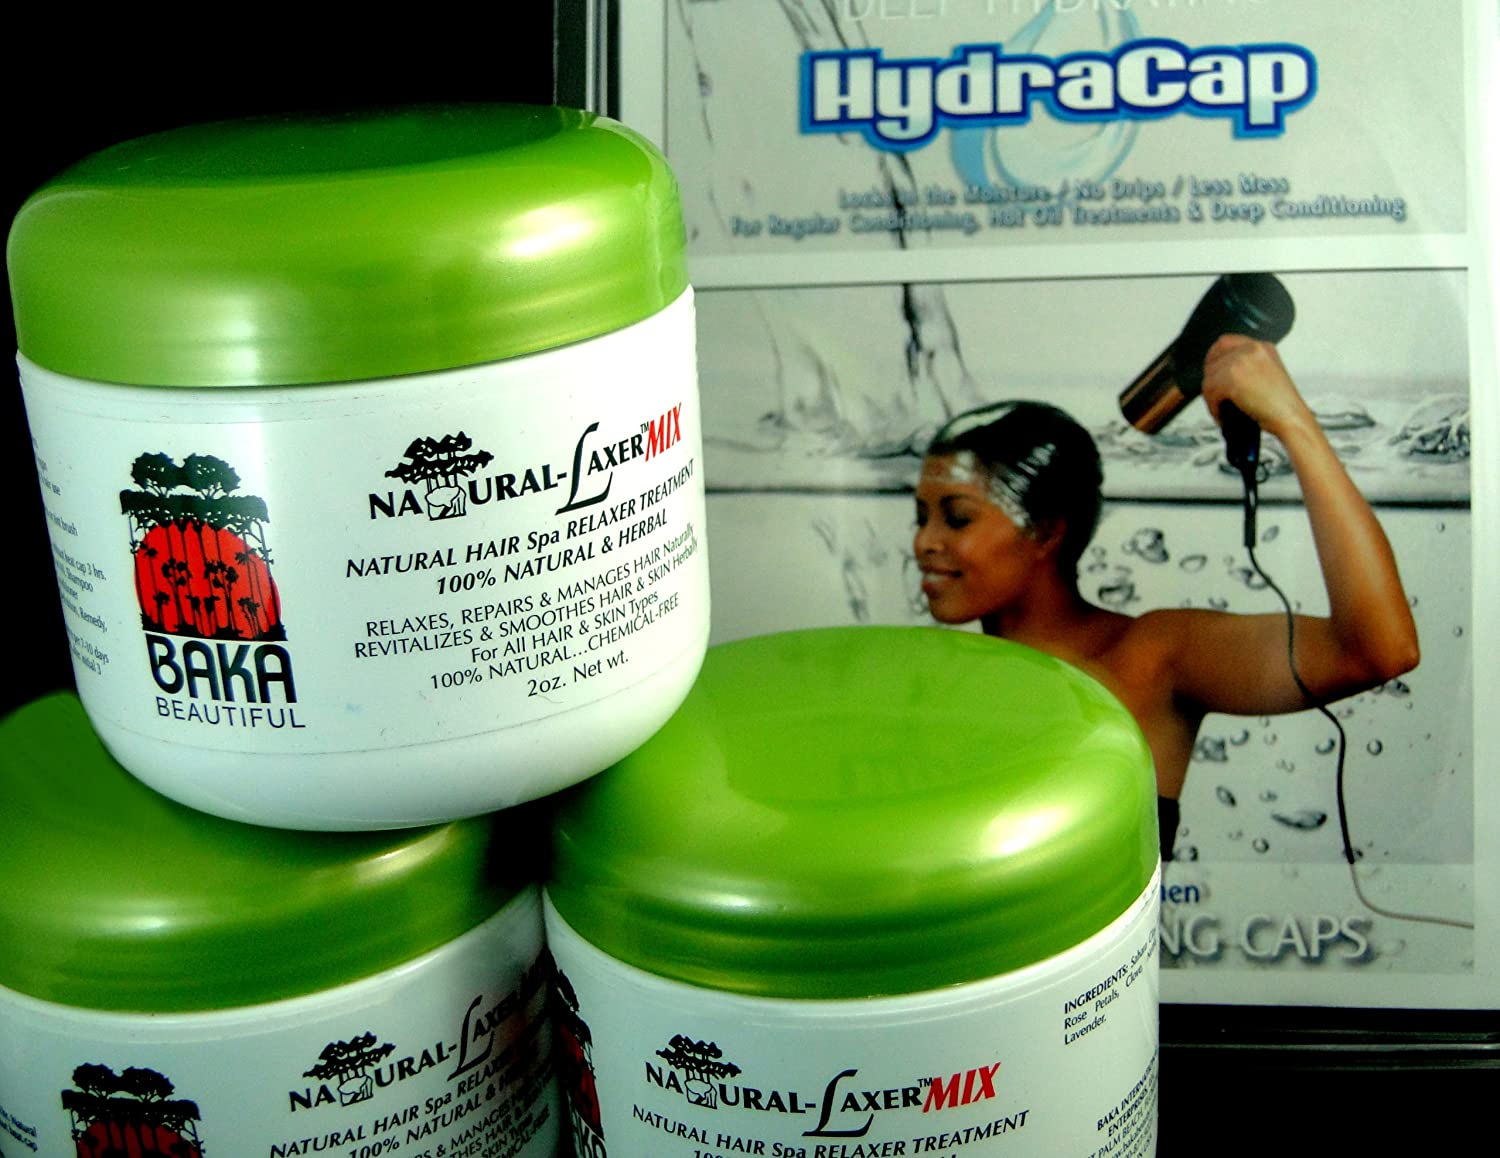 Hydra-Cap 3 pack Plus Natural-Laxer Trio Baka Beautiful